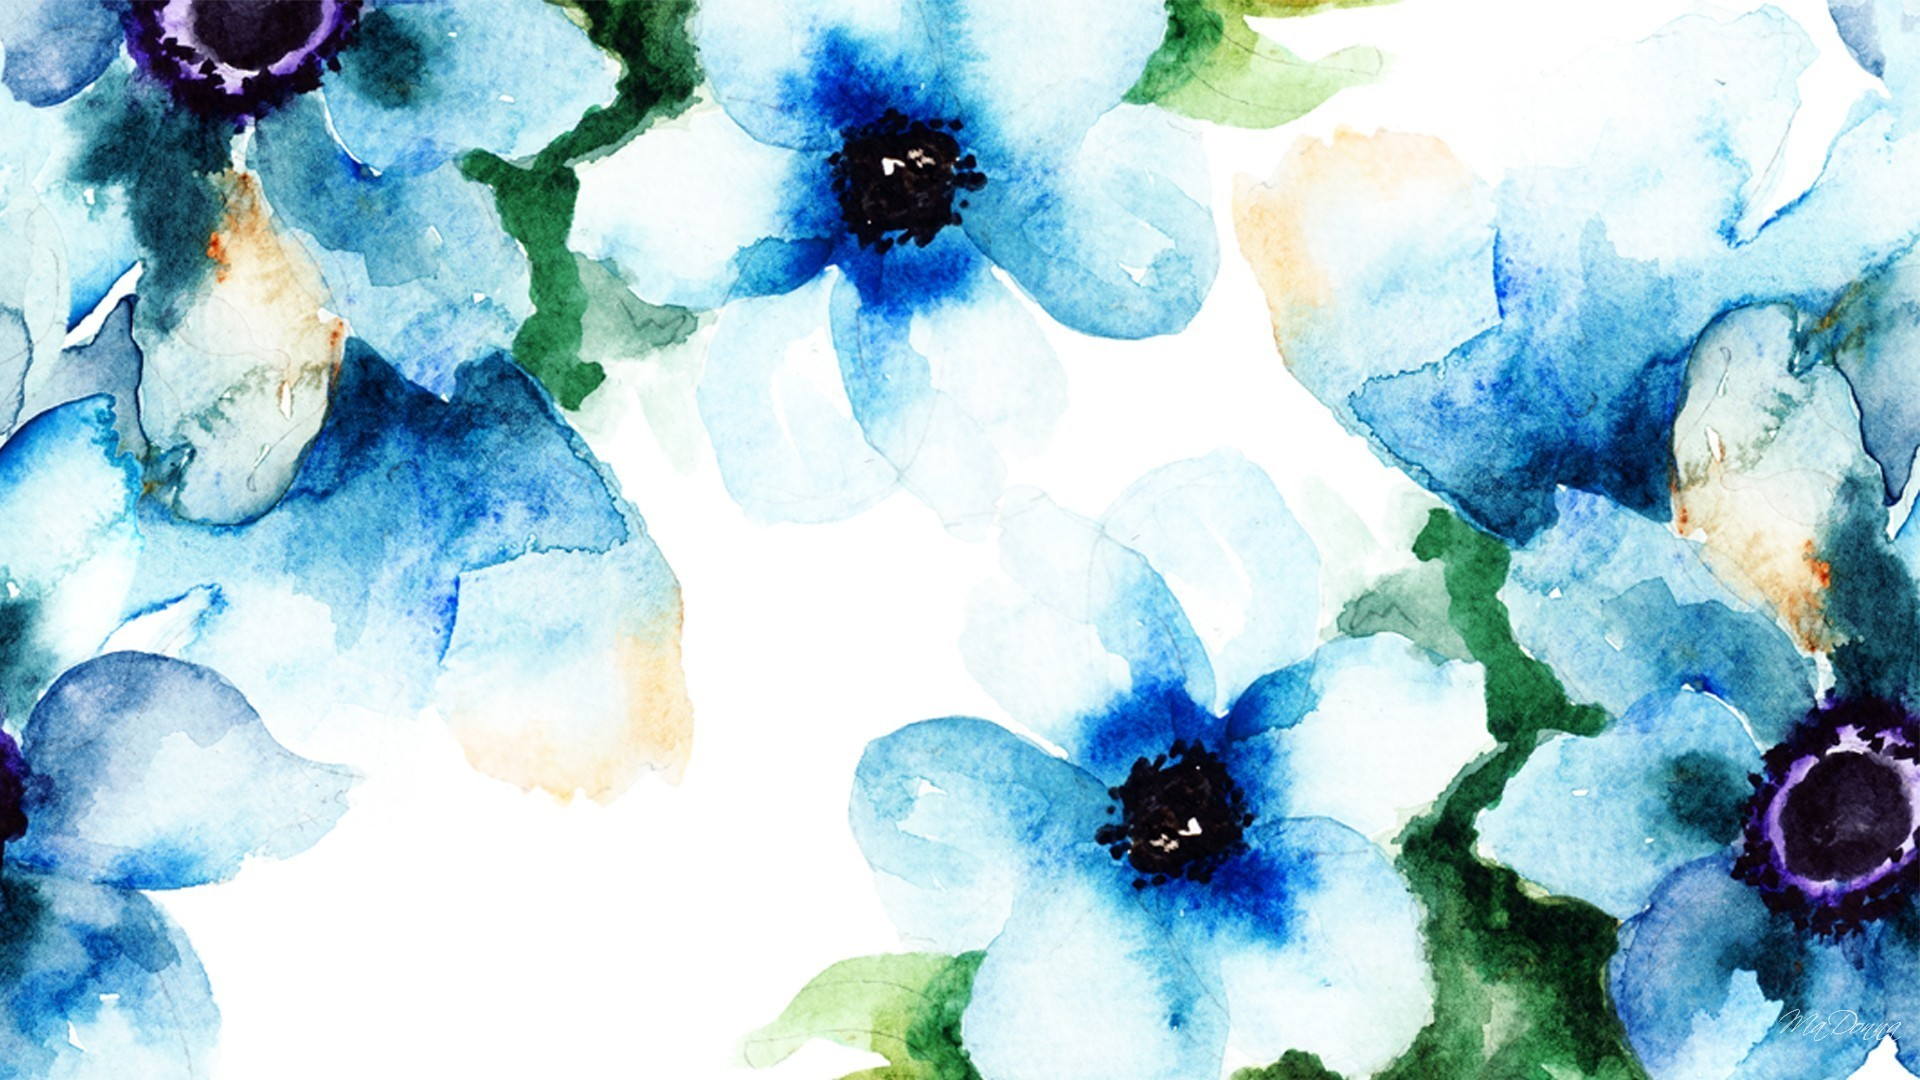 40 Watercolor Backgrounds 183 ① Download Free Cool Hd